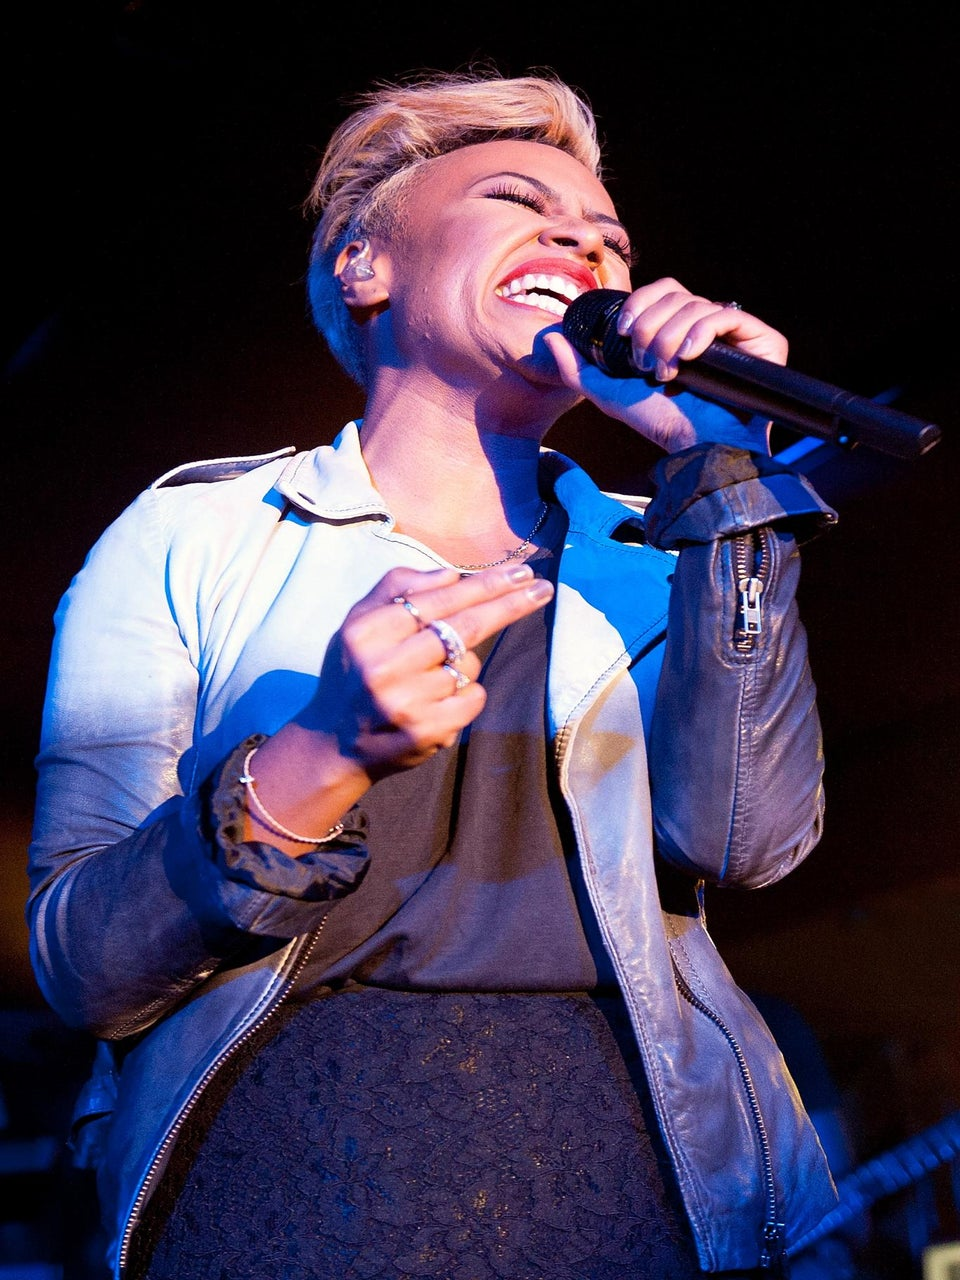 Emeli Sandé on Her ESSENCE Festival Show